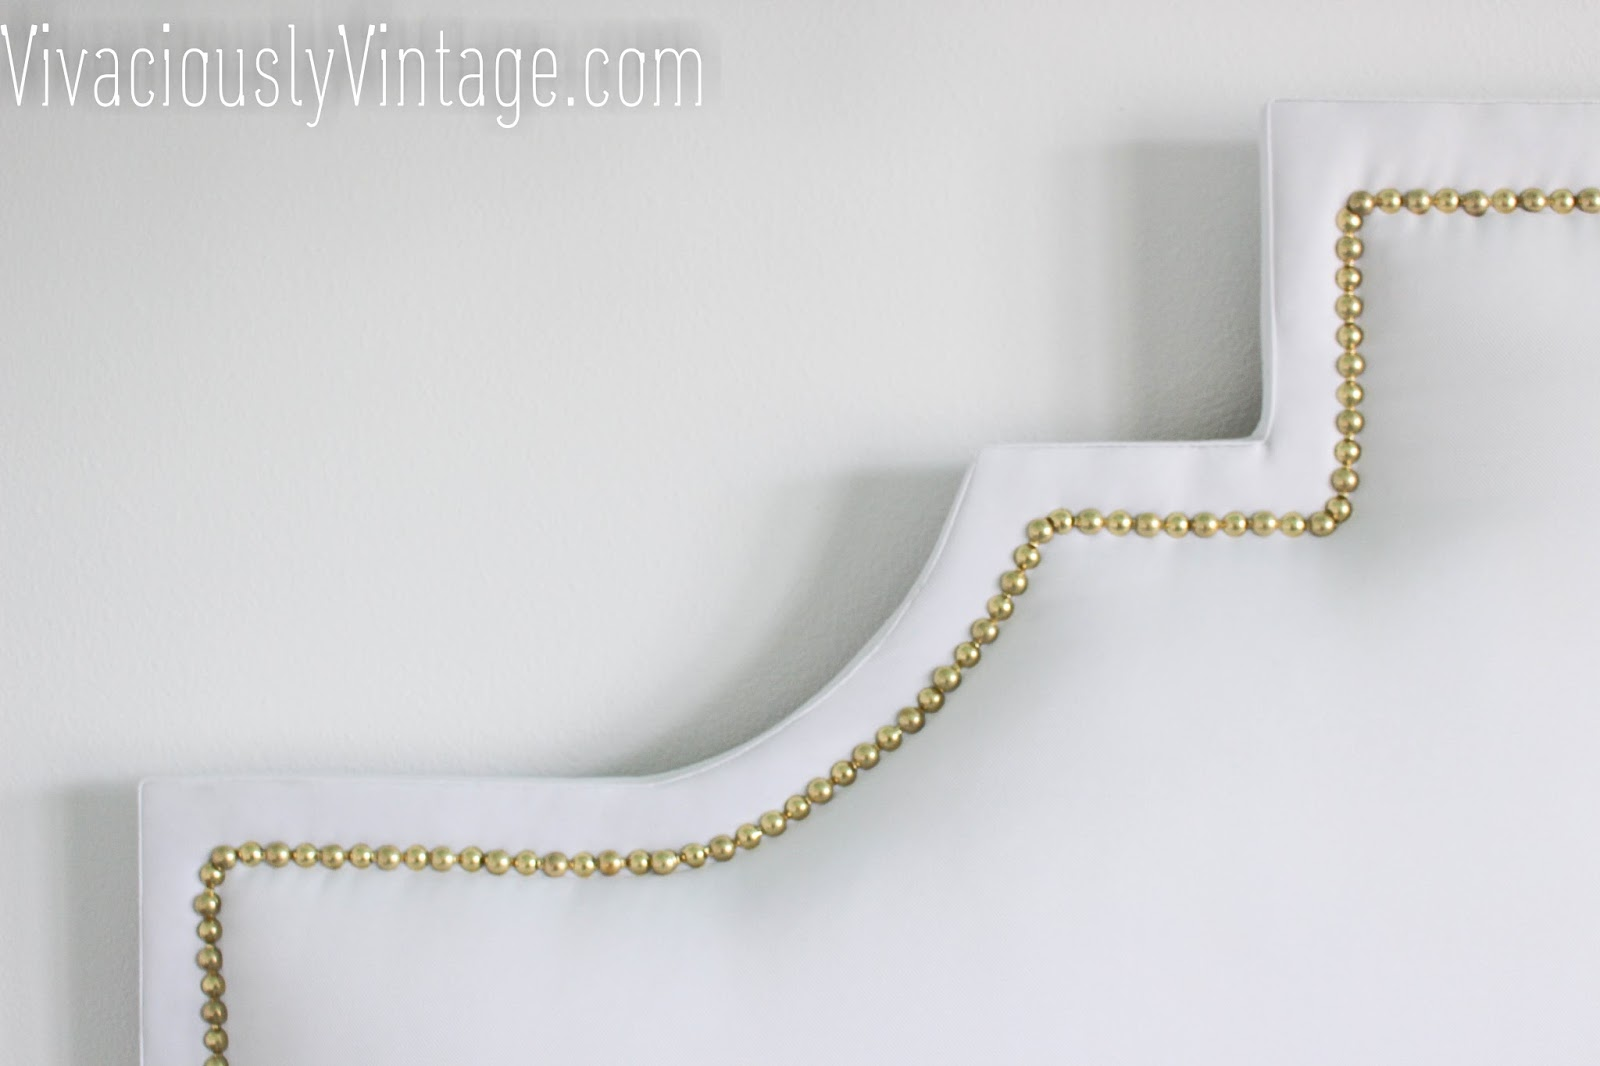 diy upholstered crib headboard with nailhead trim